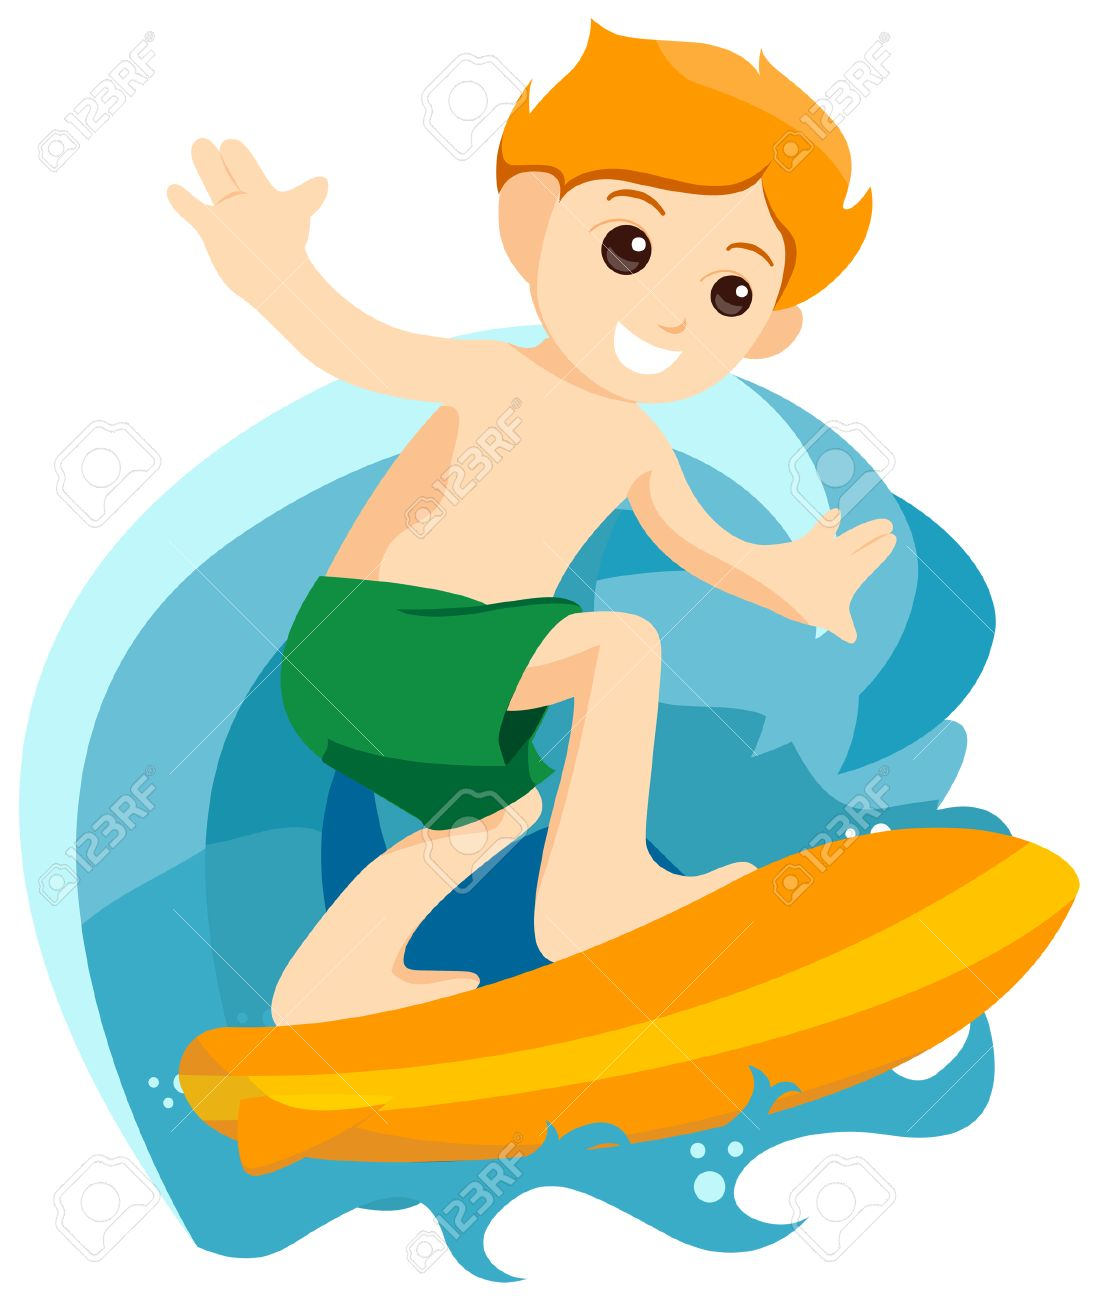 Boy Surfing with Clipping Path.